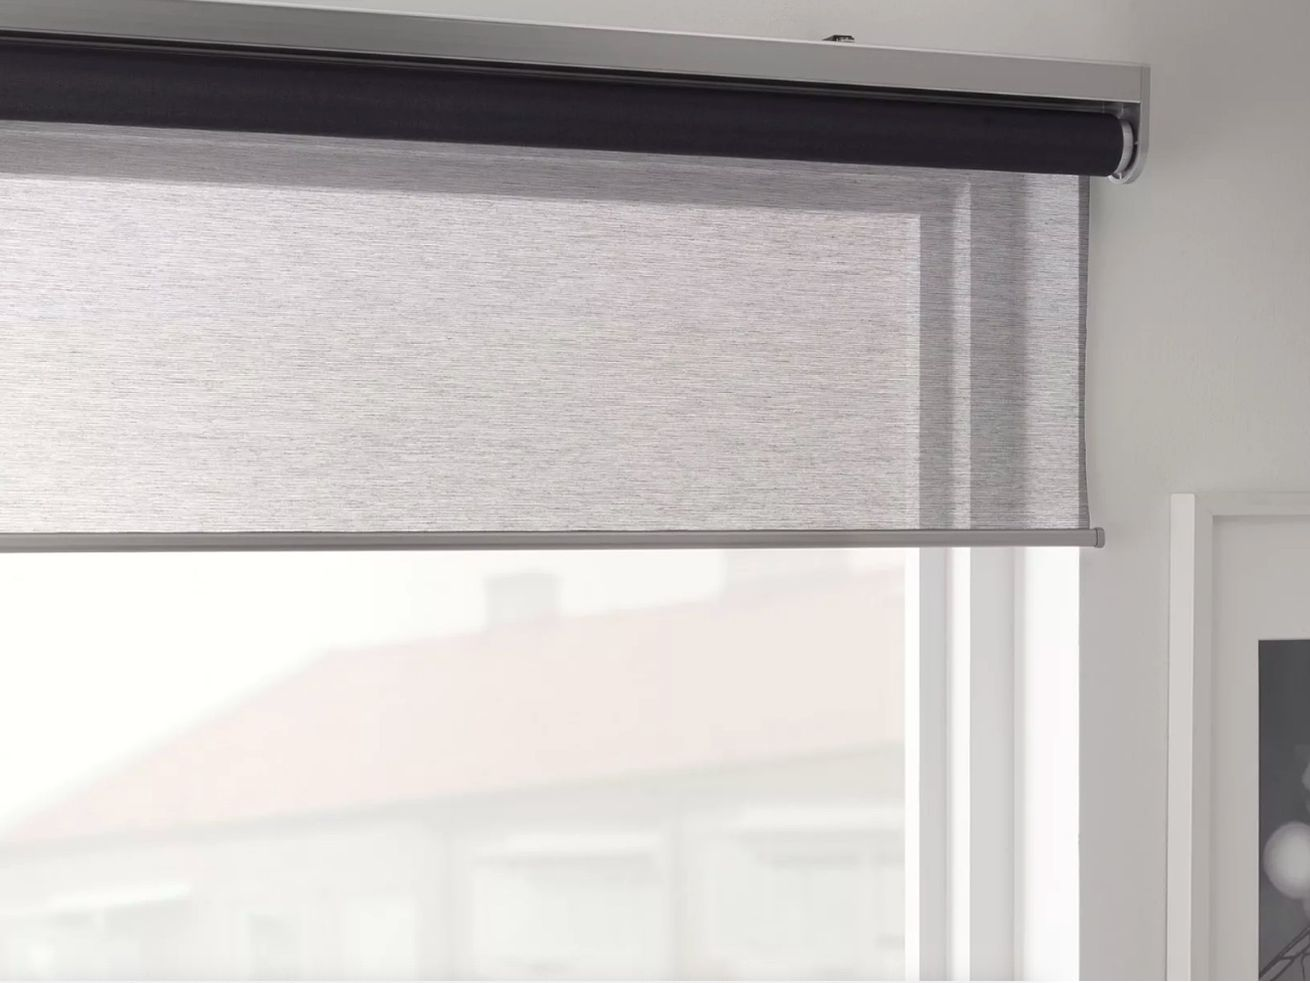 Ikea is launching affordable smart blinds this April